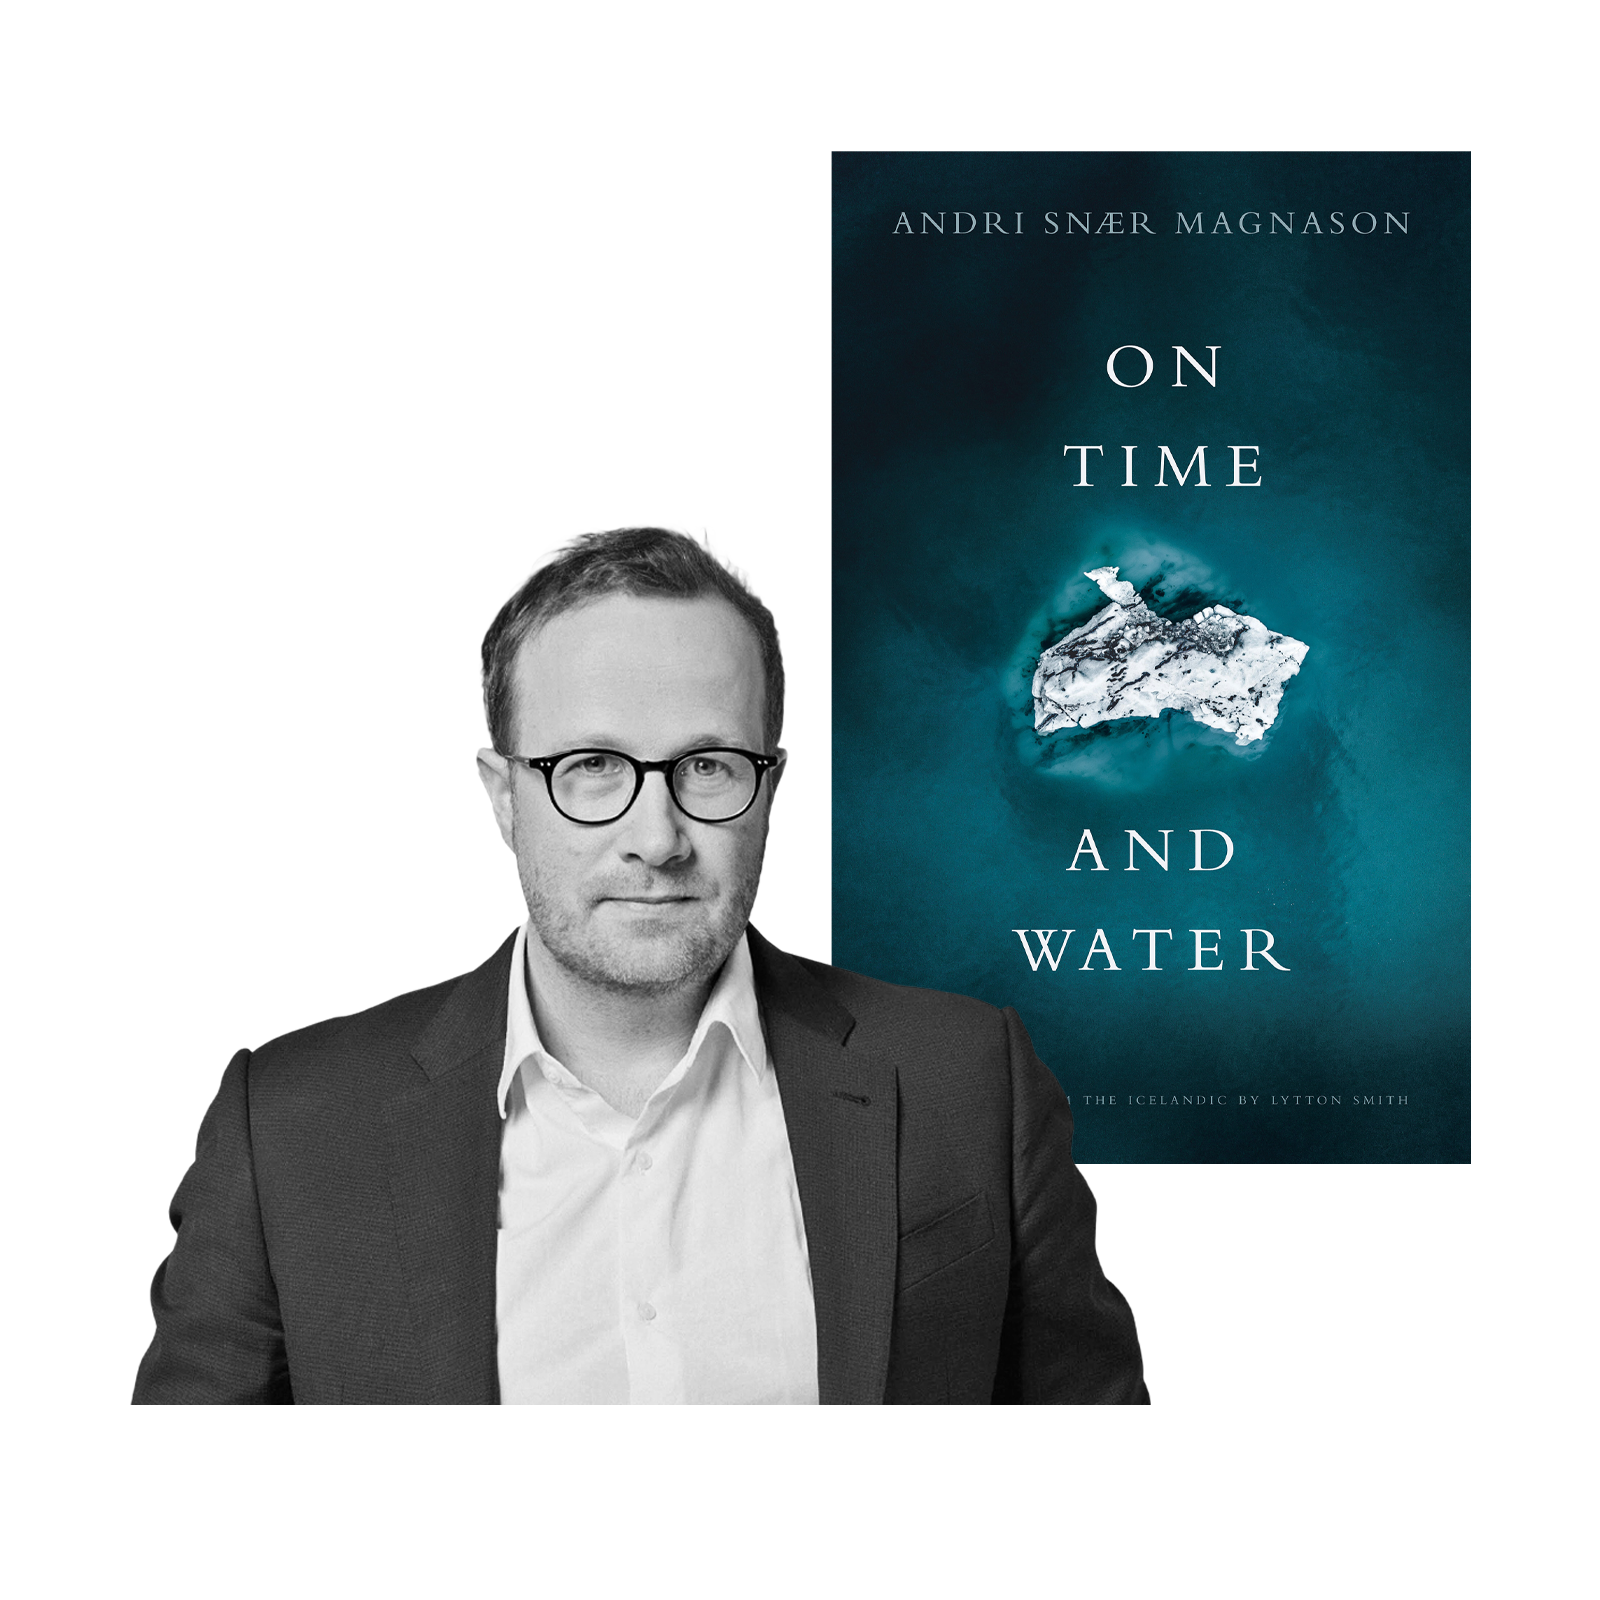 A photo of Andri Snær Magnason and the cover of his book,